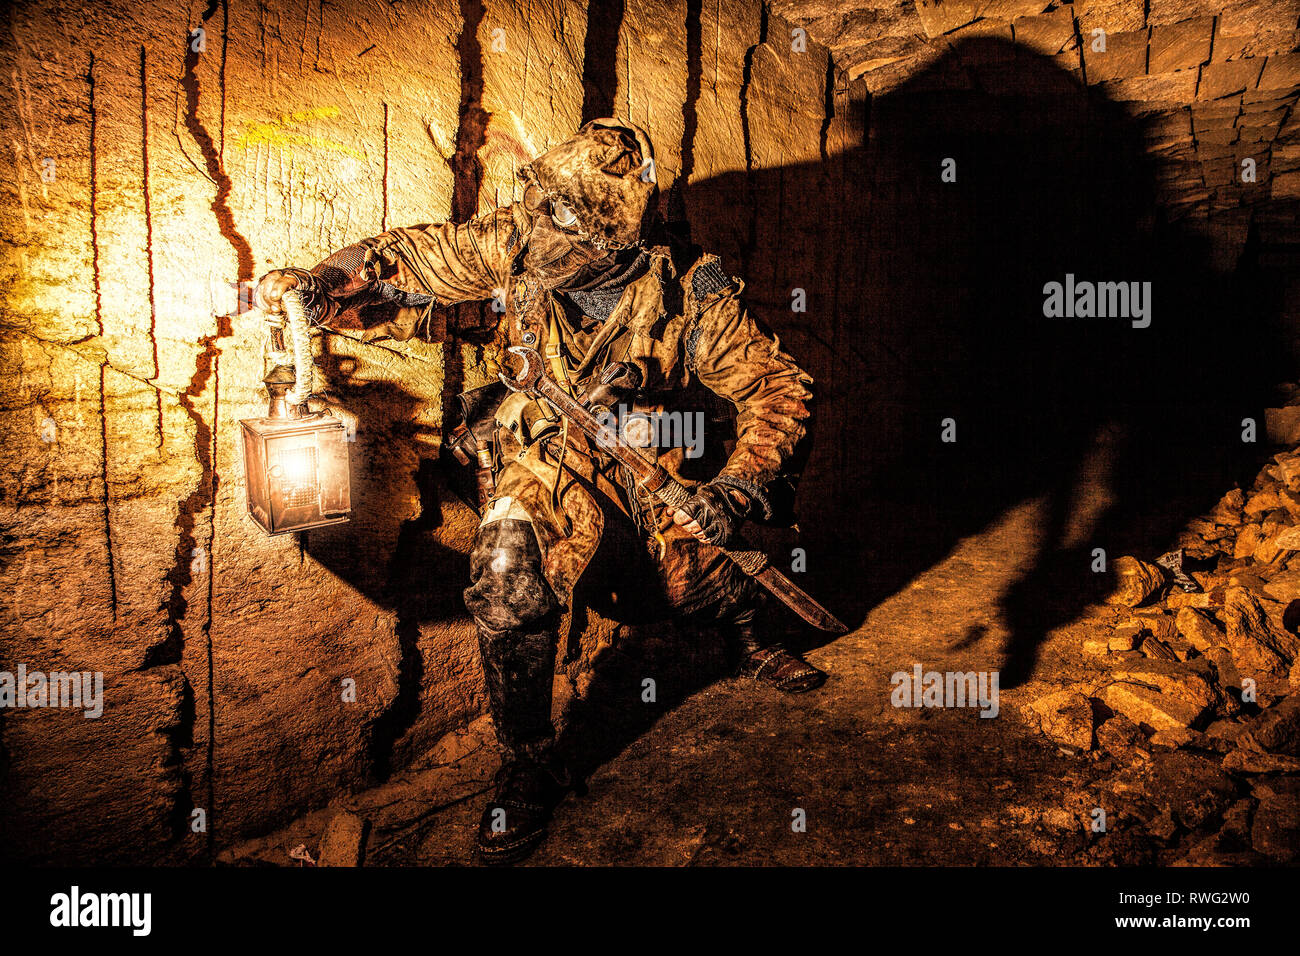 Underground post apocalyptic creature with homemade weapons and lantern. - Stock Image